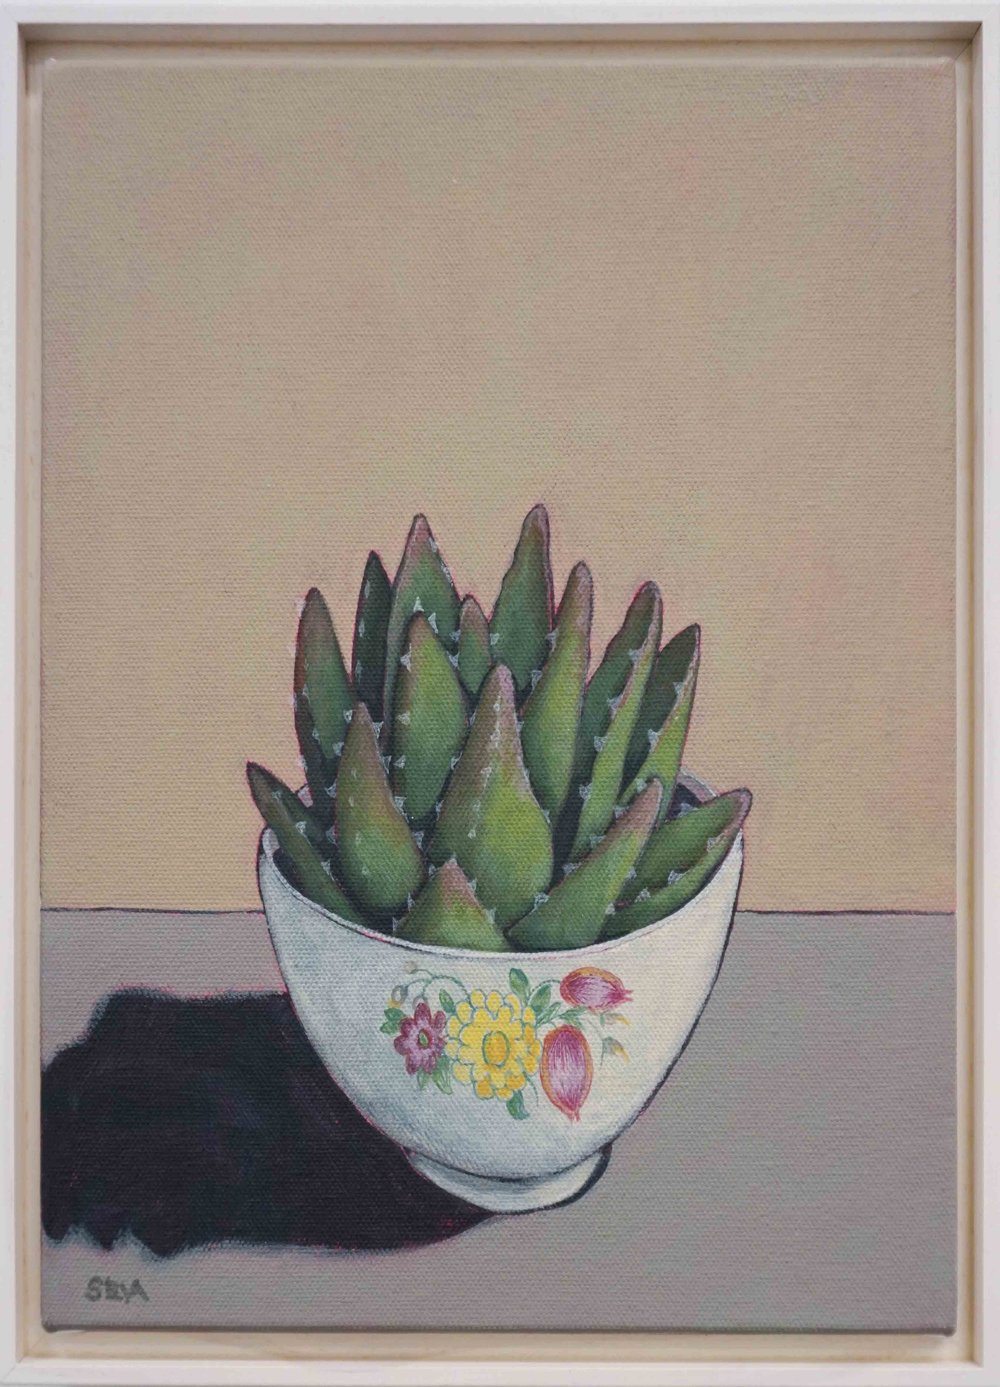 9. Sue Eva, 'Susie Cooper and Aloe', 2018, Acrylic on canvas, 30 x 25cm, $345